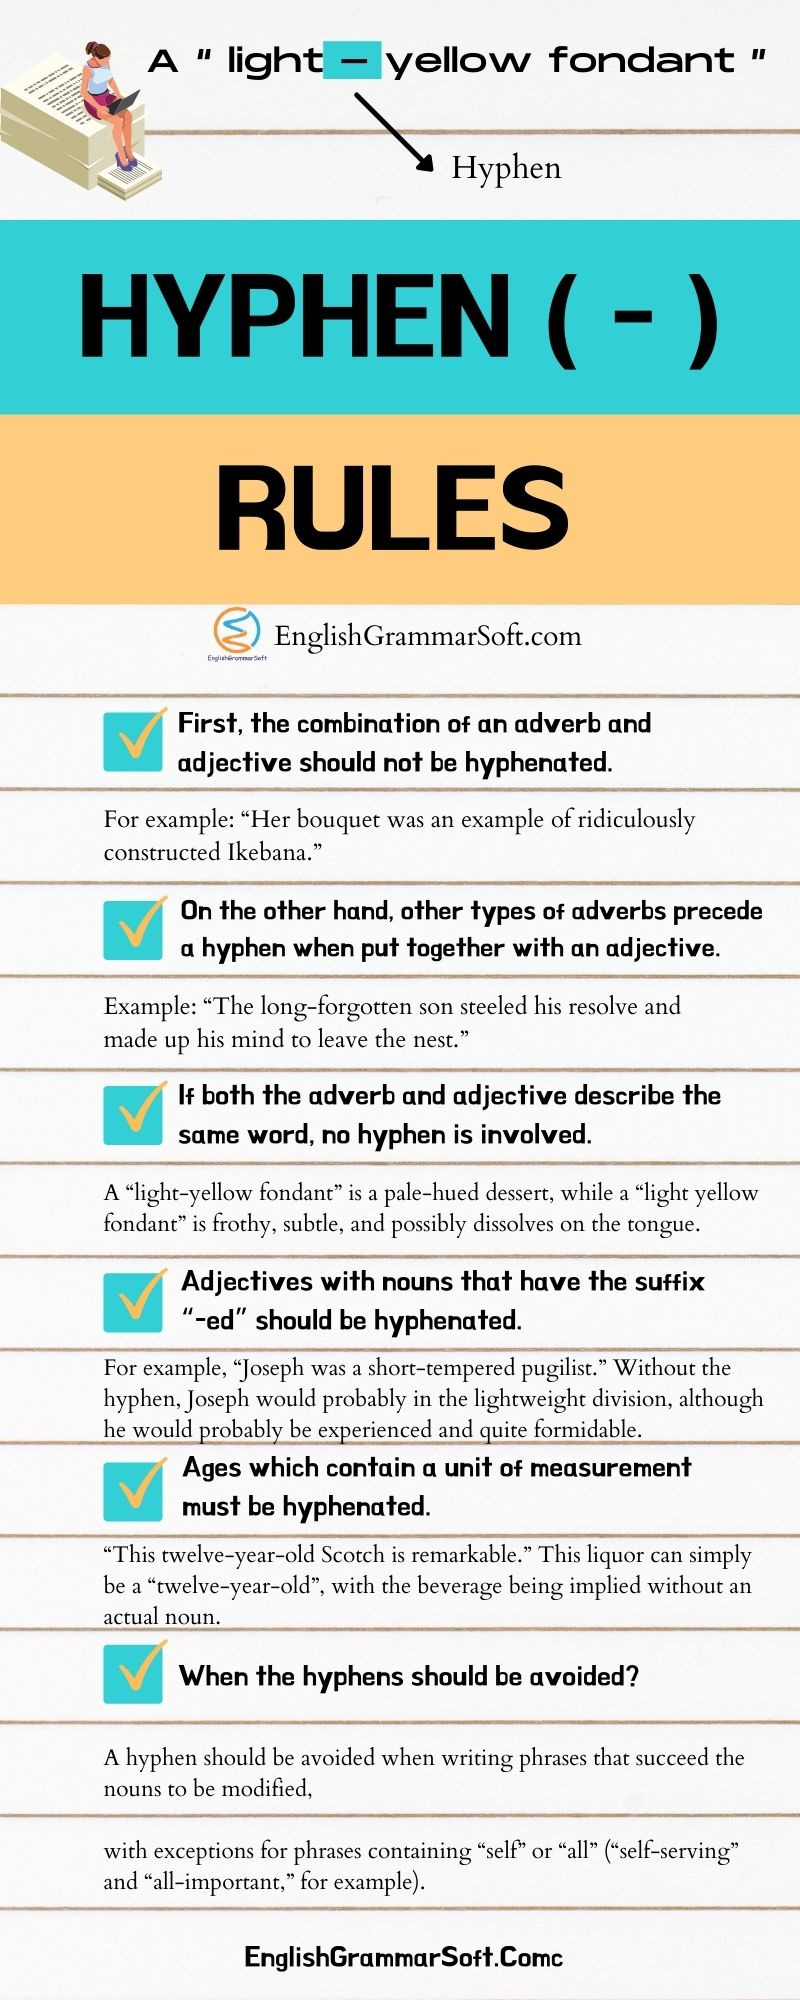 Rules for Hyphen Use